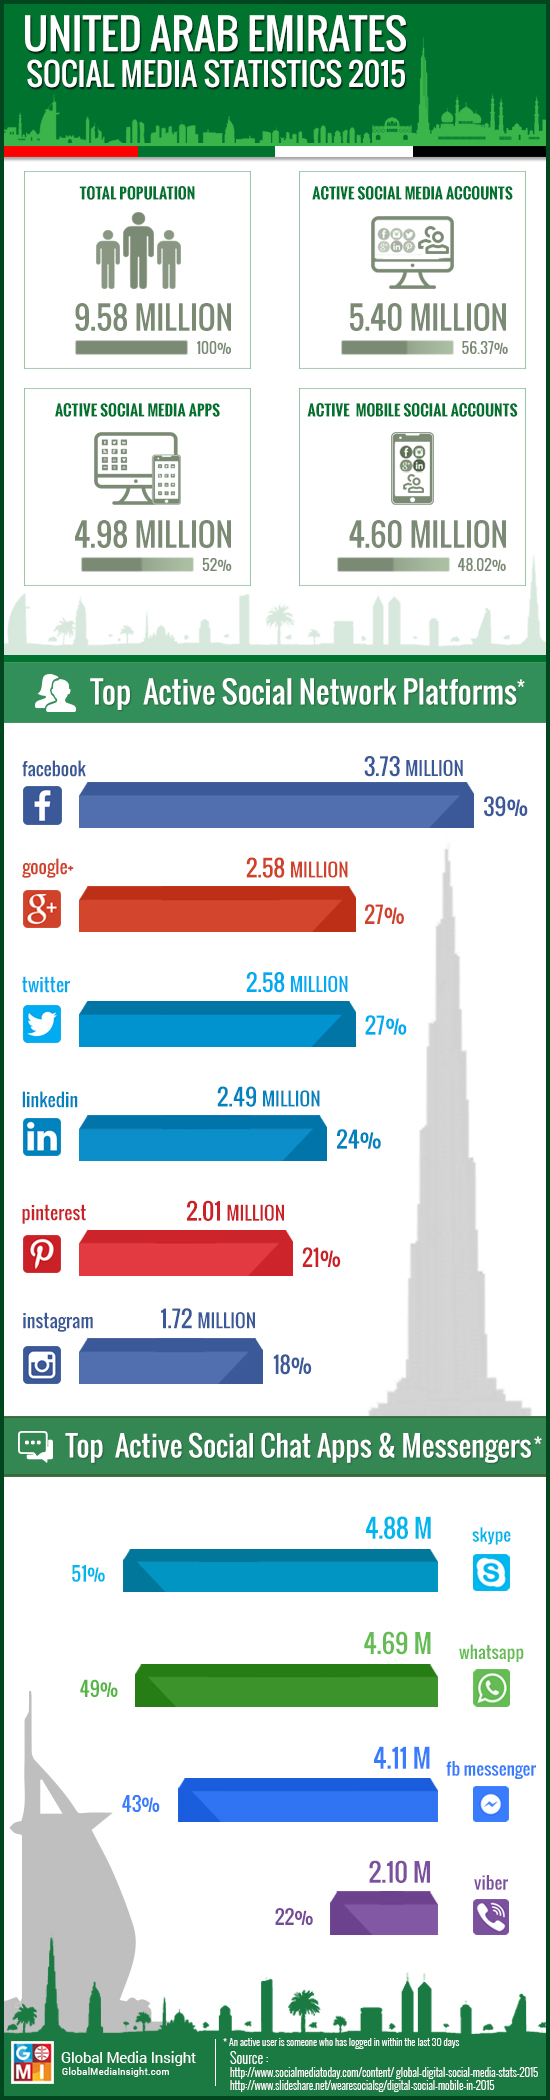 social media statistics 2013 from video 30 facts & statistics on social media and healthcare  why this matters: video  marketing converts to traffic and leads much more easily than other  7 biggest  innovations in health care technology in 2014 [infographic] - 11/17/2013.